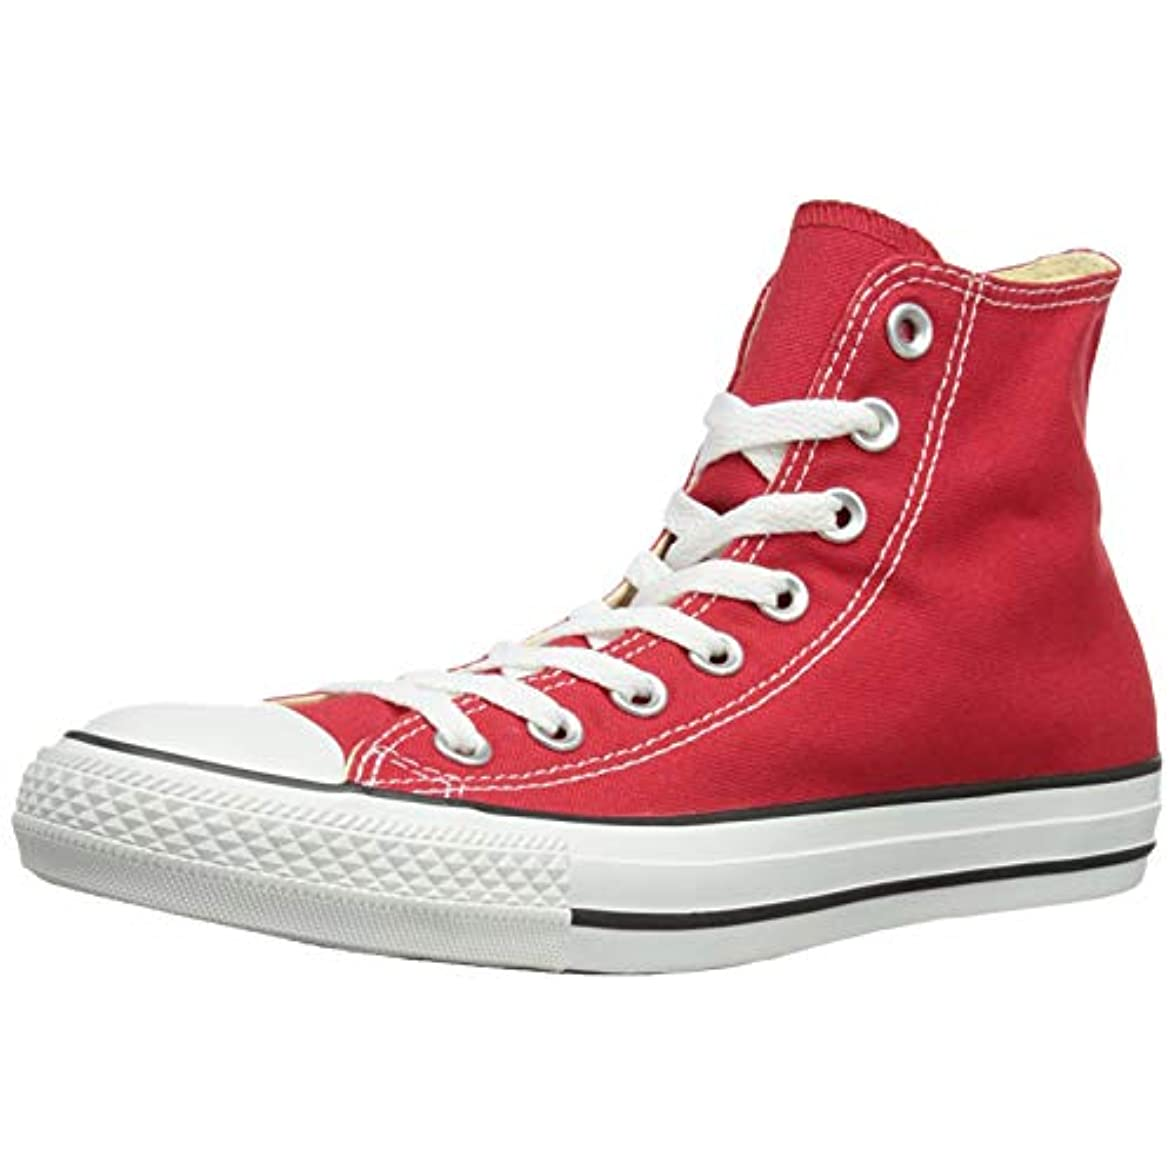 Converse All Star Hi Sneaker Unisex – Adulto